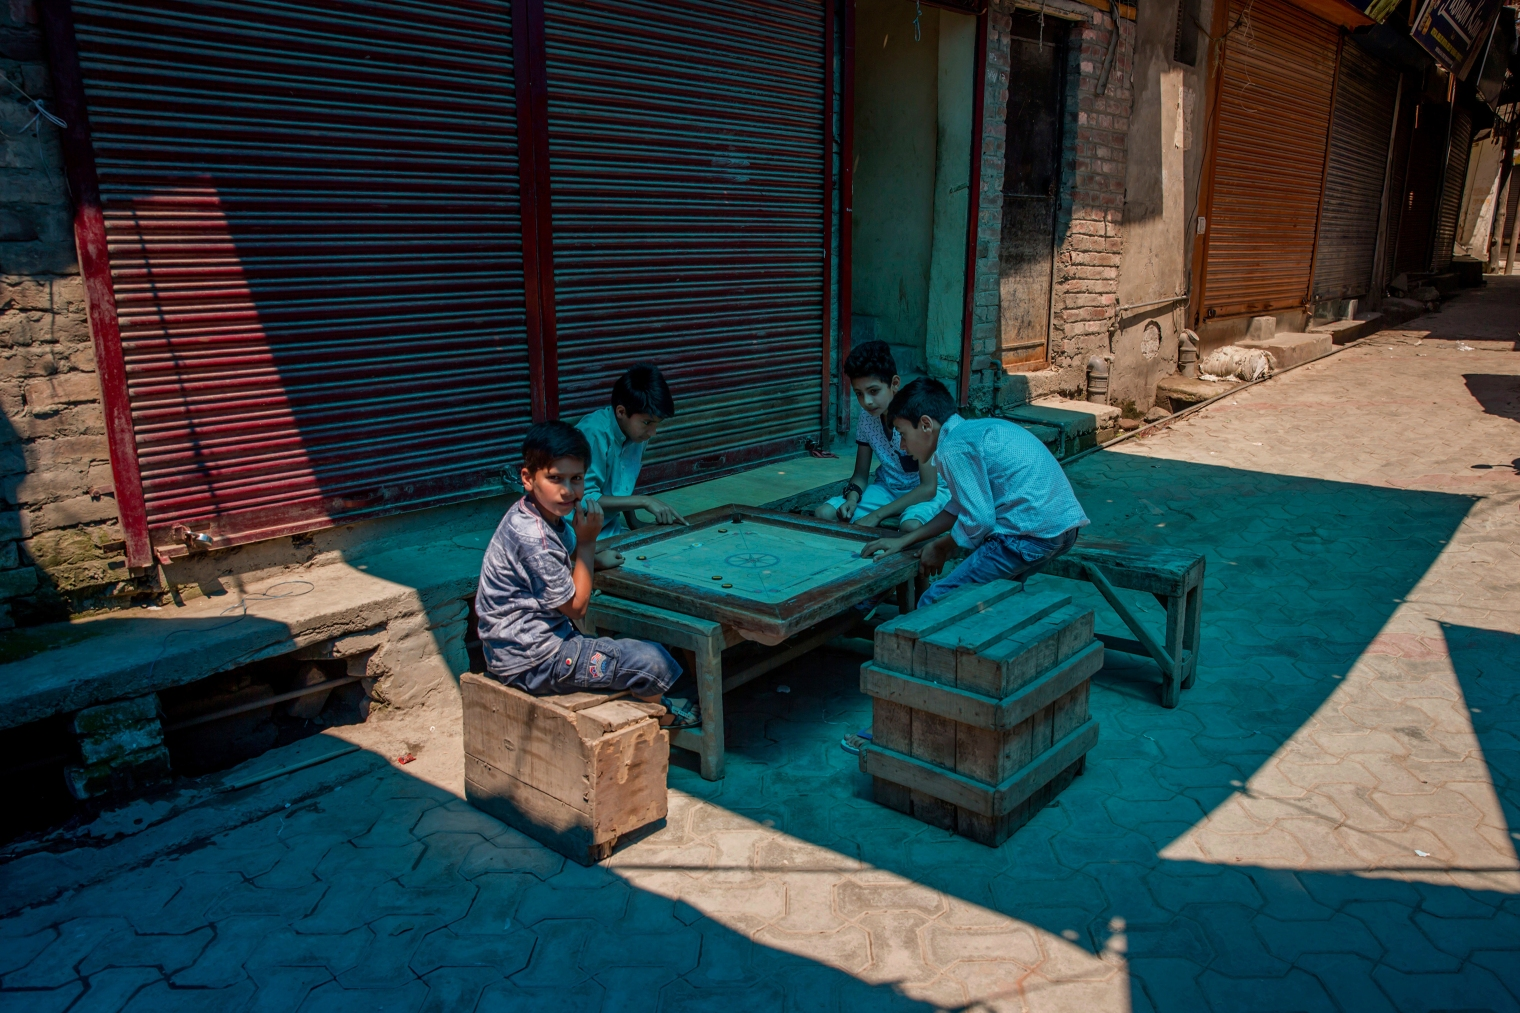 Boys play caromboard on a road outside during a strike in Srinagar on June 9, 2017. Parts of Indian-controlled Kashmir remained under curfew Friday, while general strikes were being staged in other areas after Kashmiri separatists called for strike to protest the Tuesday killing of a civilian by government forces during a search operation to flush out Kashmiri rebels in the southern town of Indian controlled Kashmir.